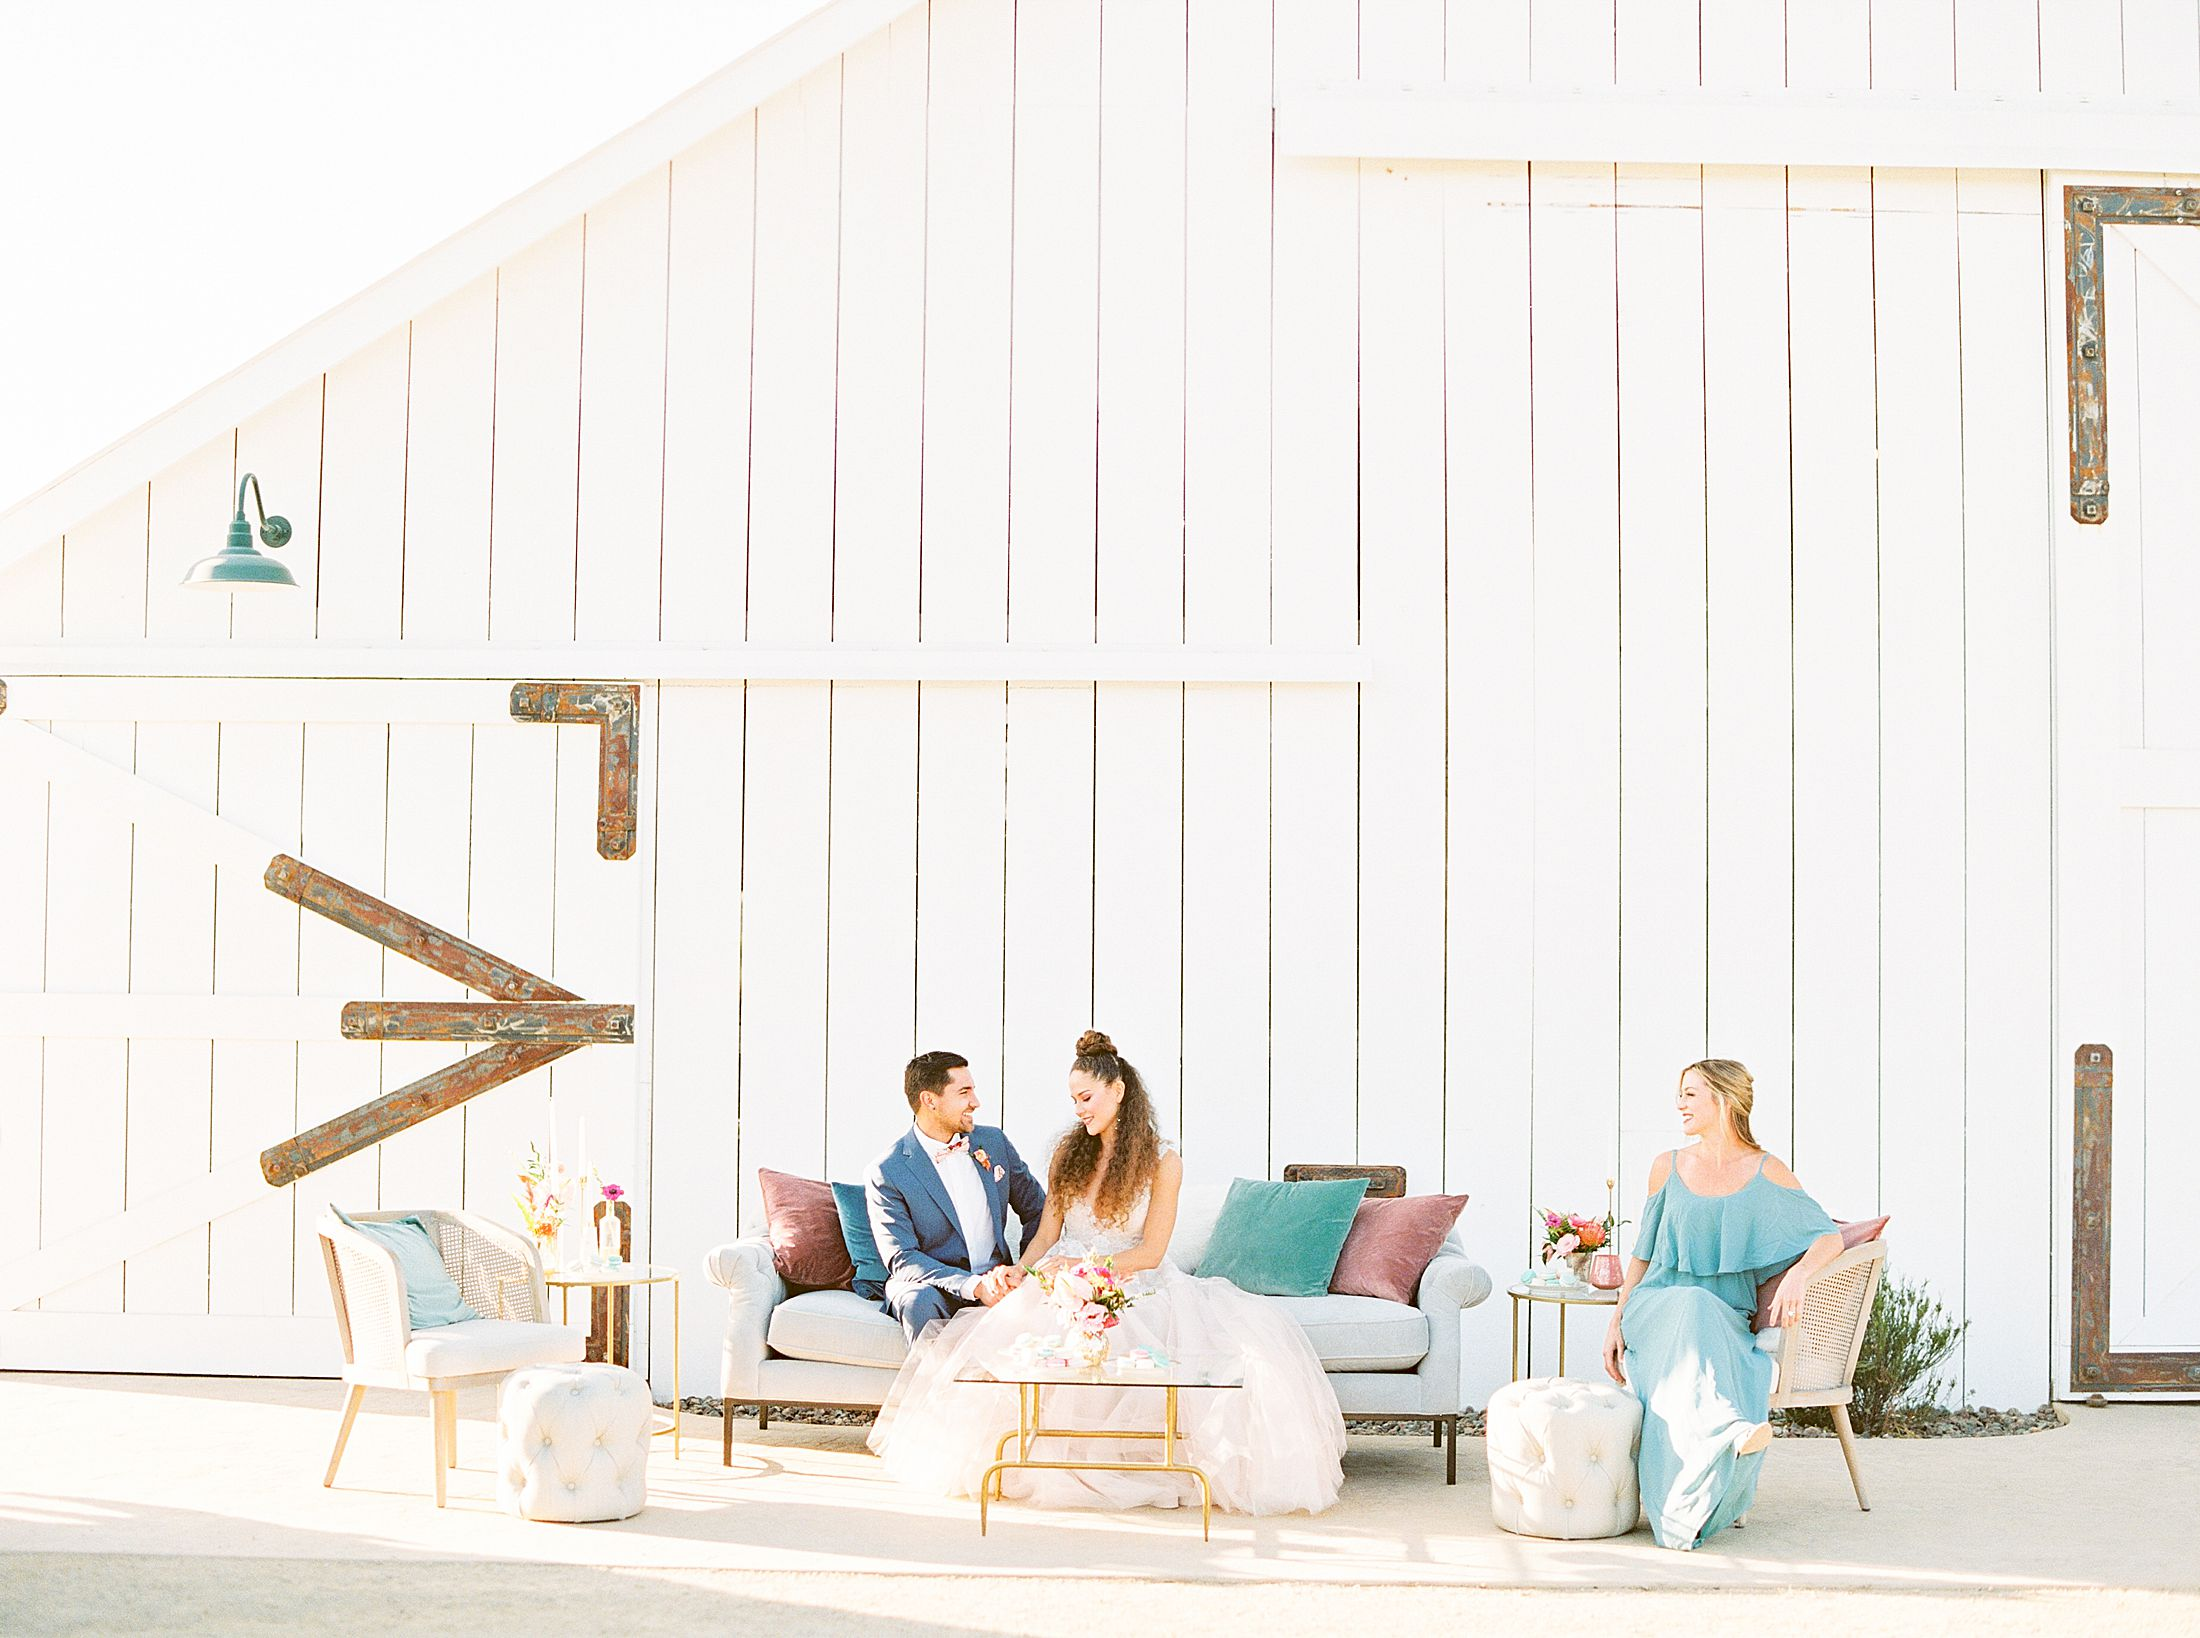 White Barn Edna Valley Wedding Inspiration - San Luis Obispo Wedding - Featured on Green Wedding Shoes - Ashley Baumgartner - FM Events SLO - SLO Wedding Photographer_0062.jpg